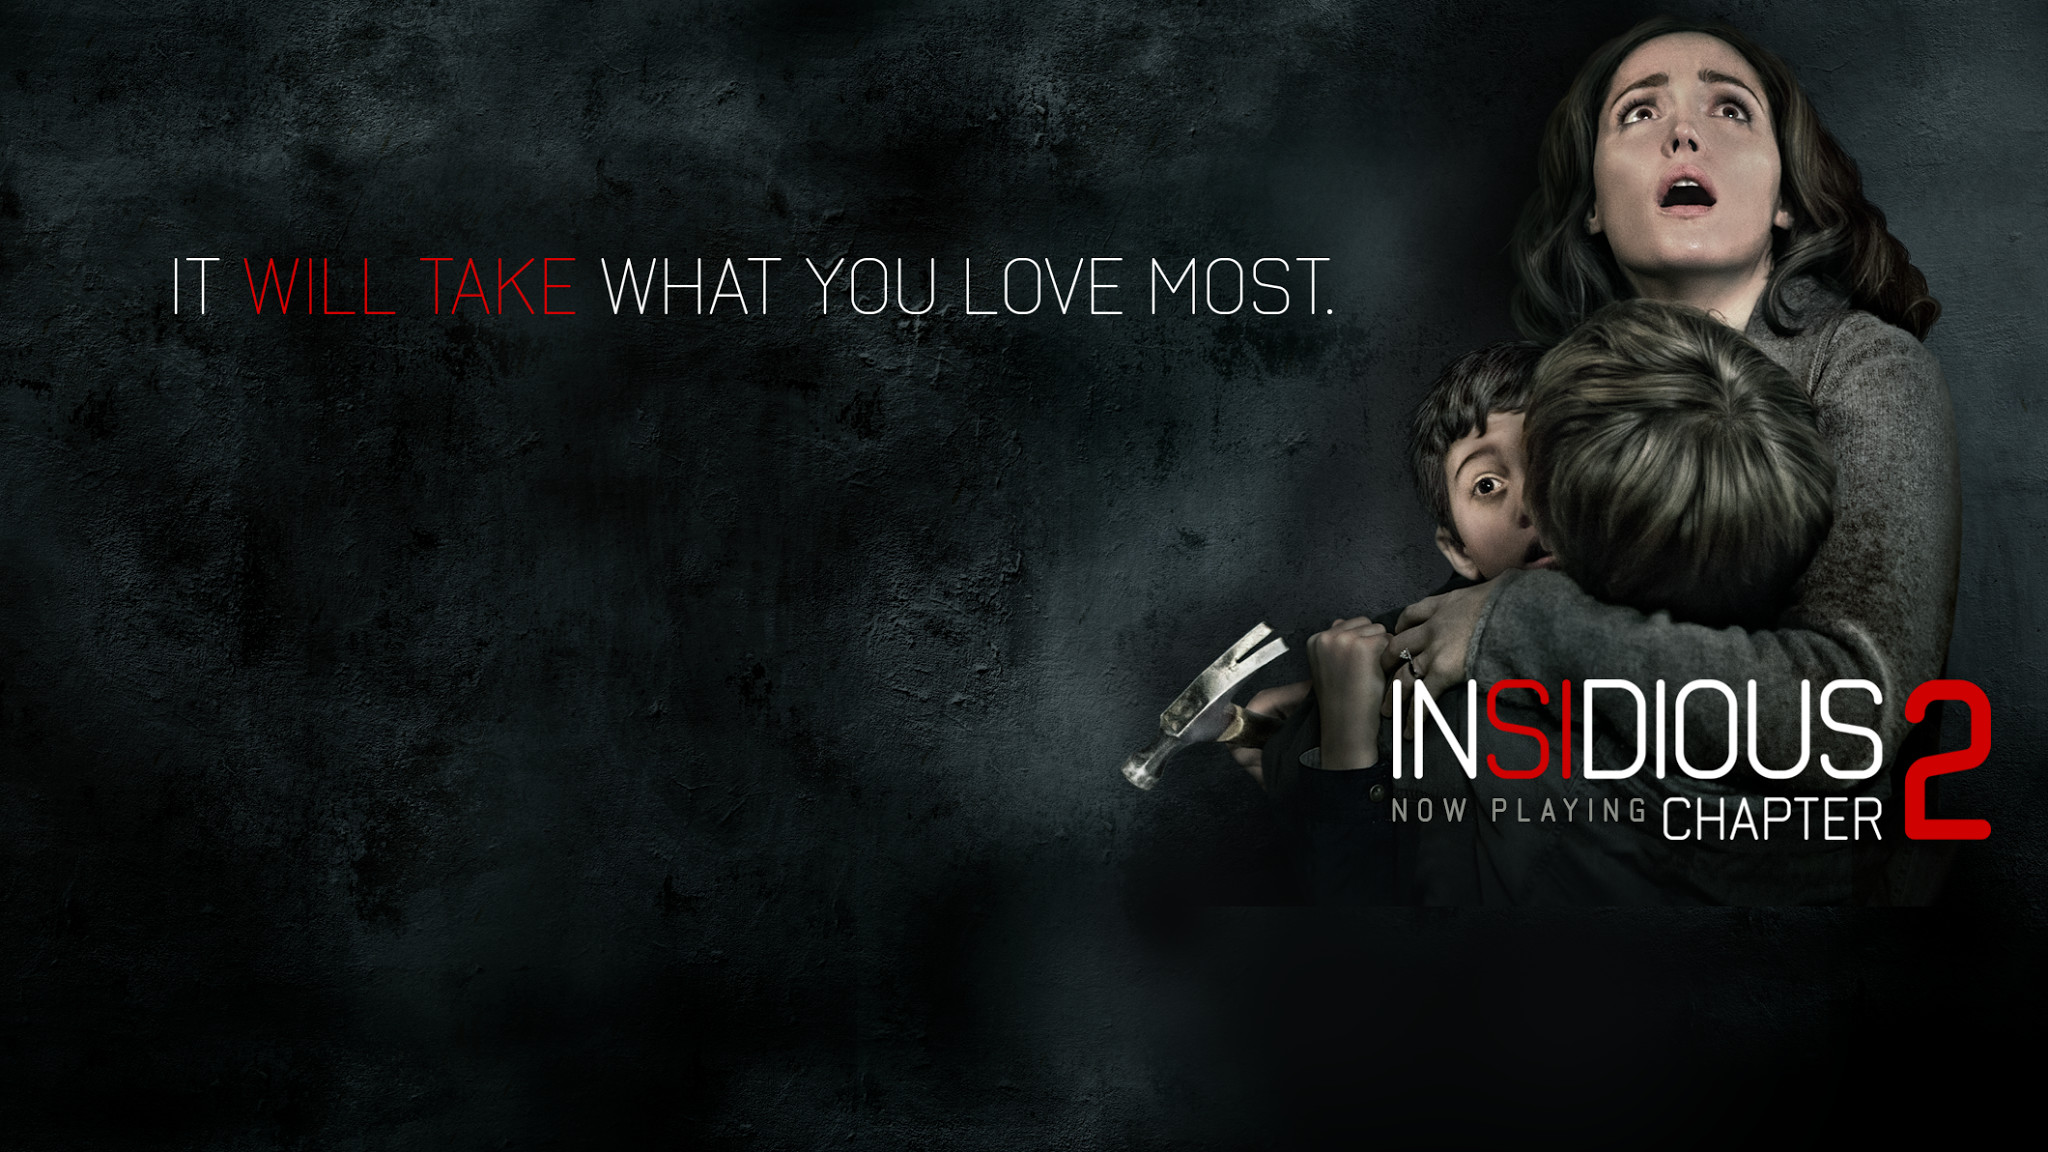 Download Insidious Horror Movie Poster Hd Wallpaper Insidious Chapter 2 2013 2048x1152 Wallpaper Teahub Io